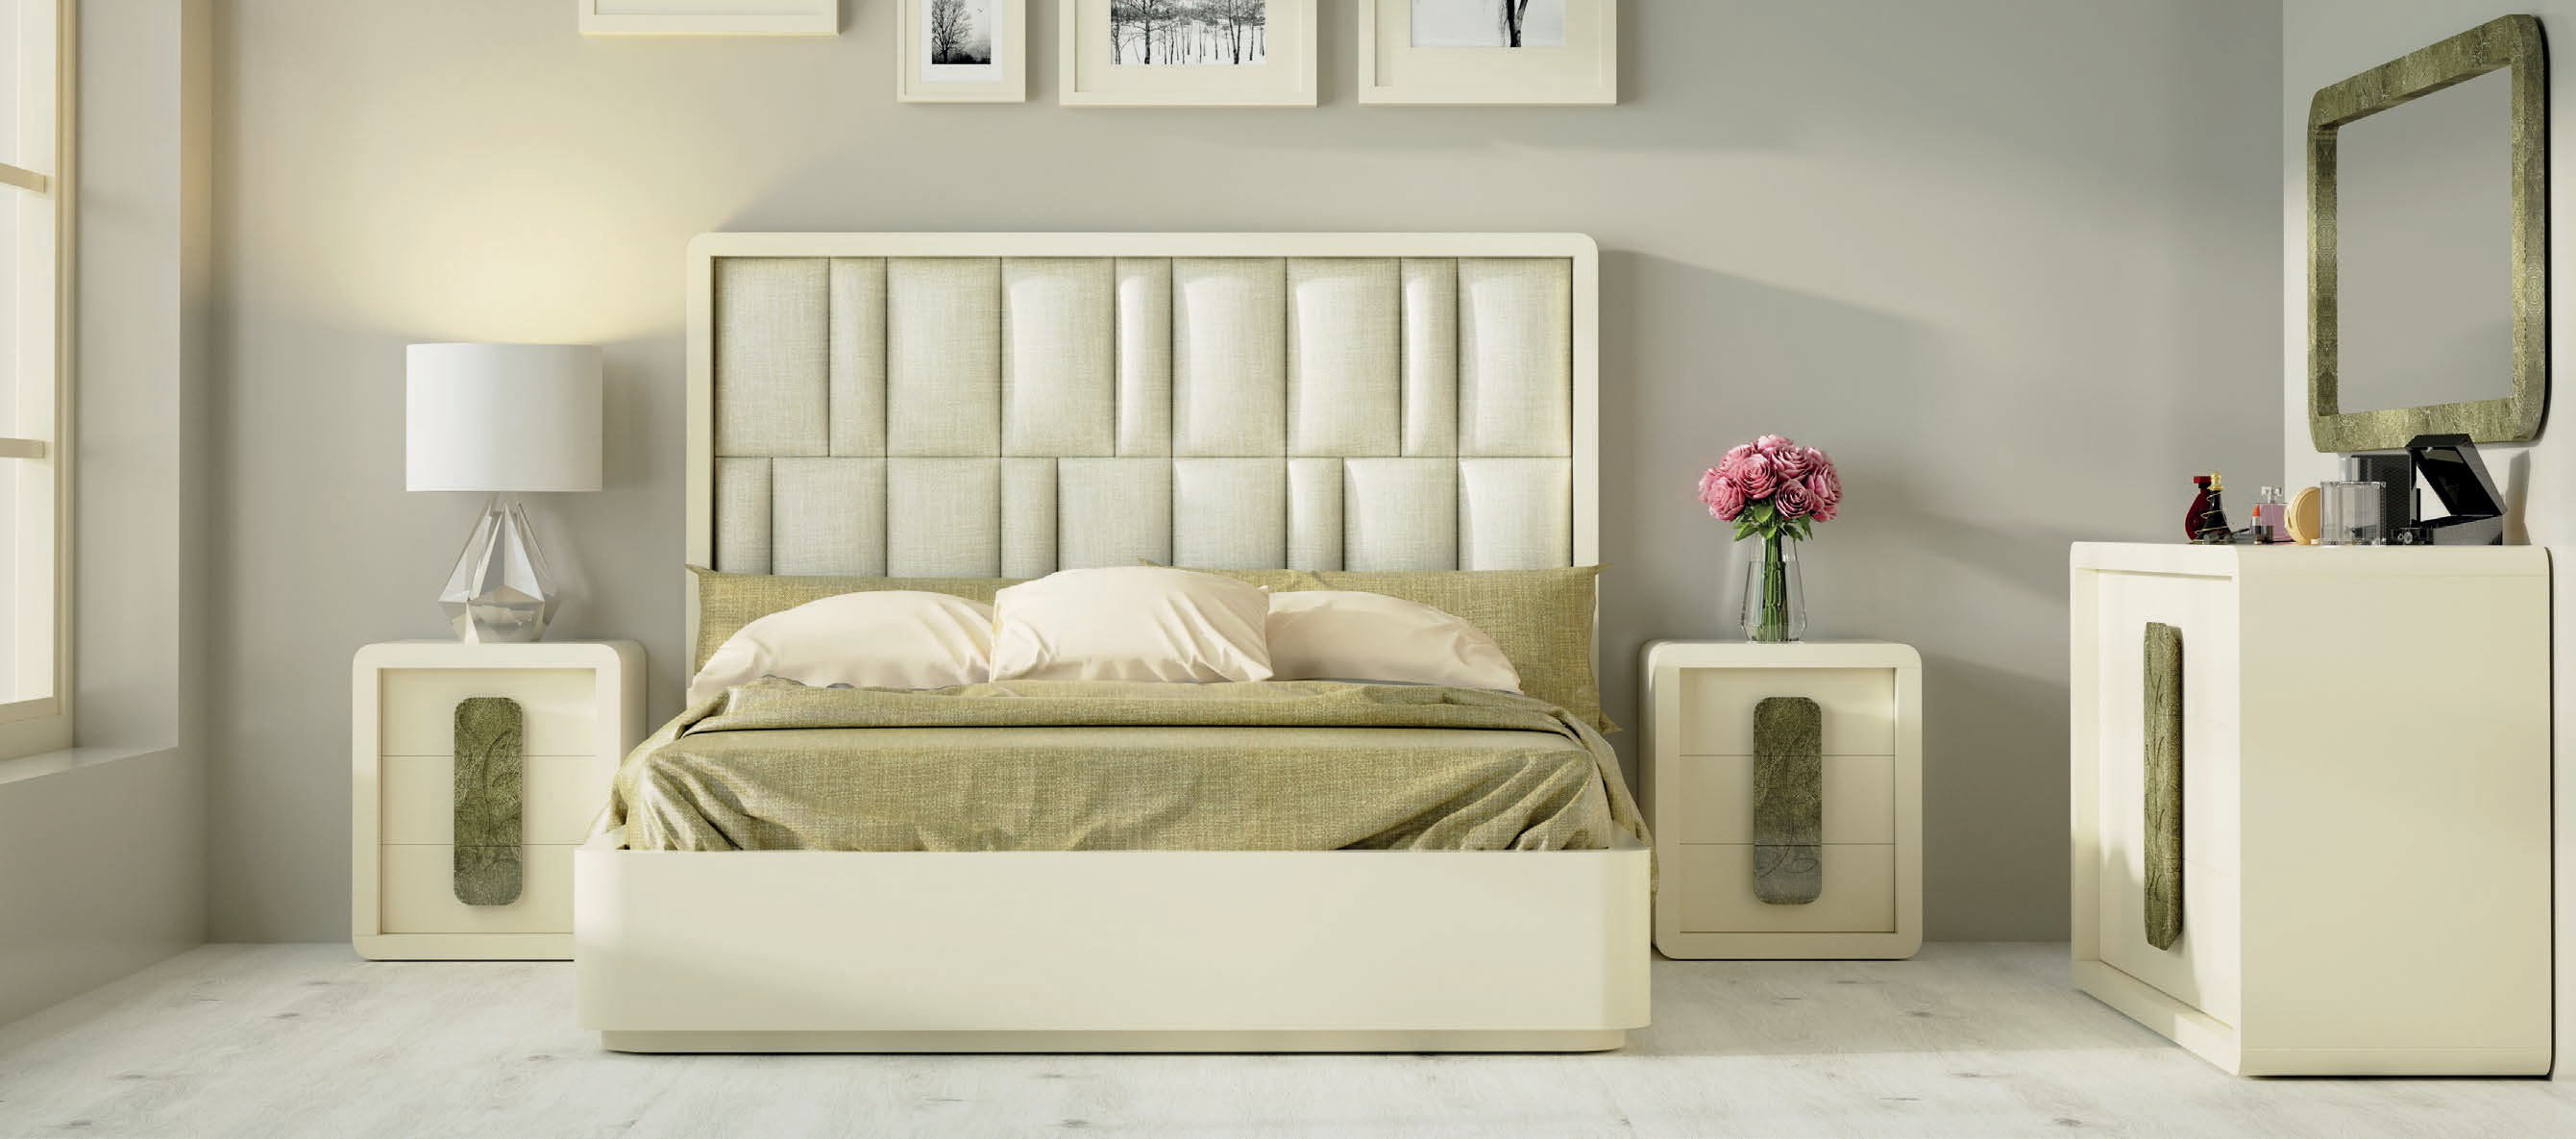 Brands Franco Furniture Bedrooms vol3, Spain DOR 169